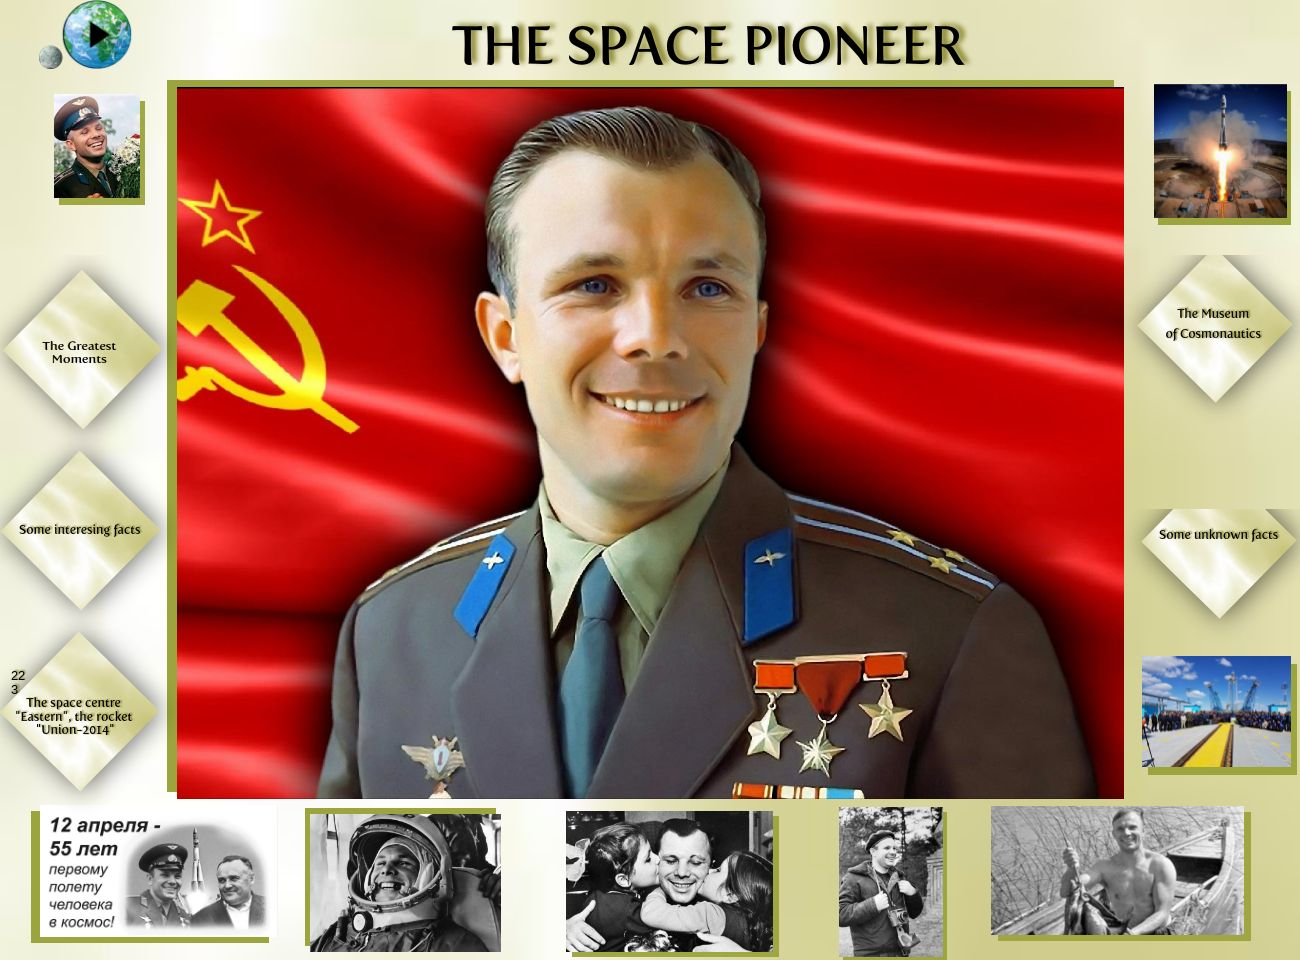 Yuri Gagarin, the First Russian Space Pioneer